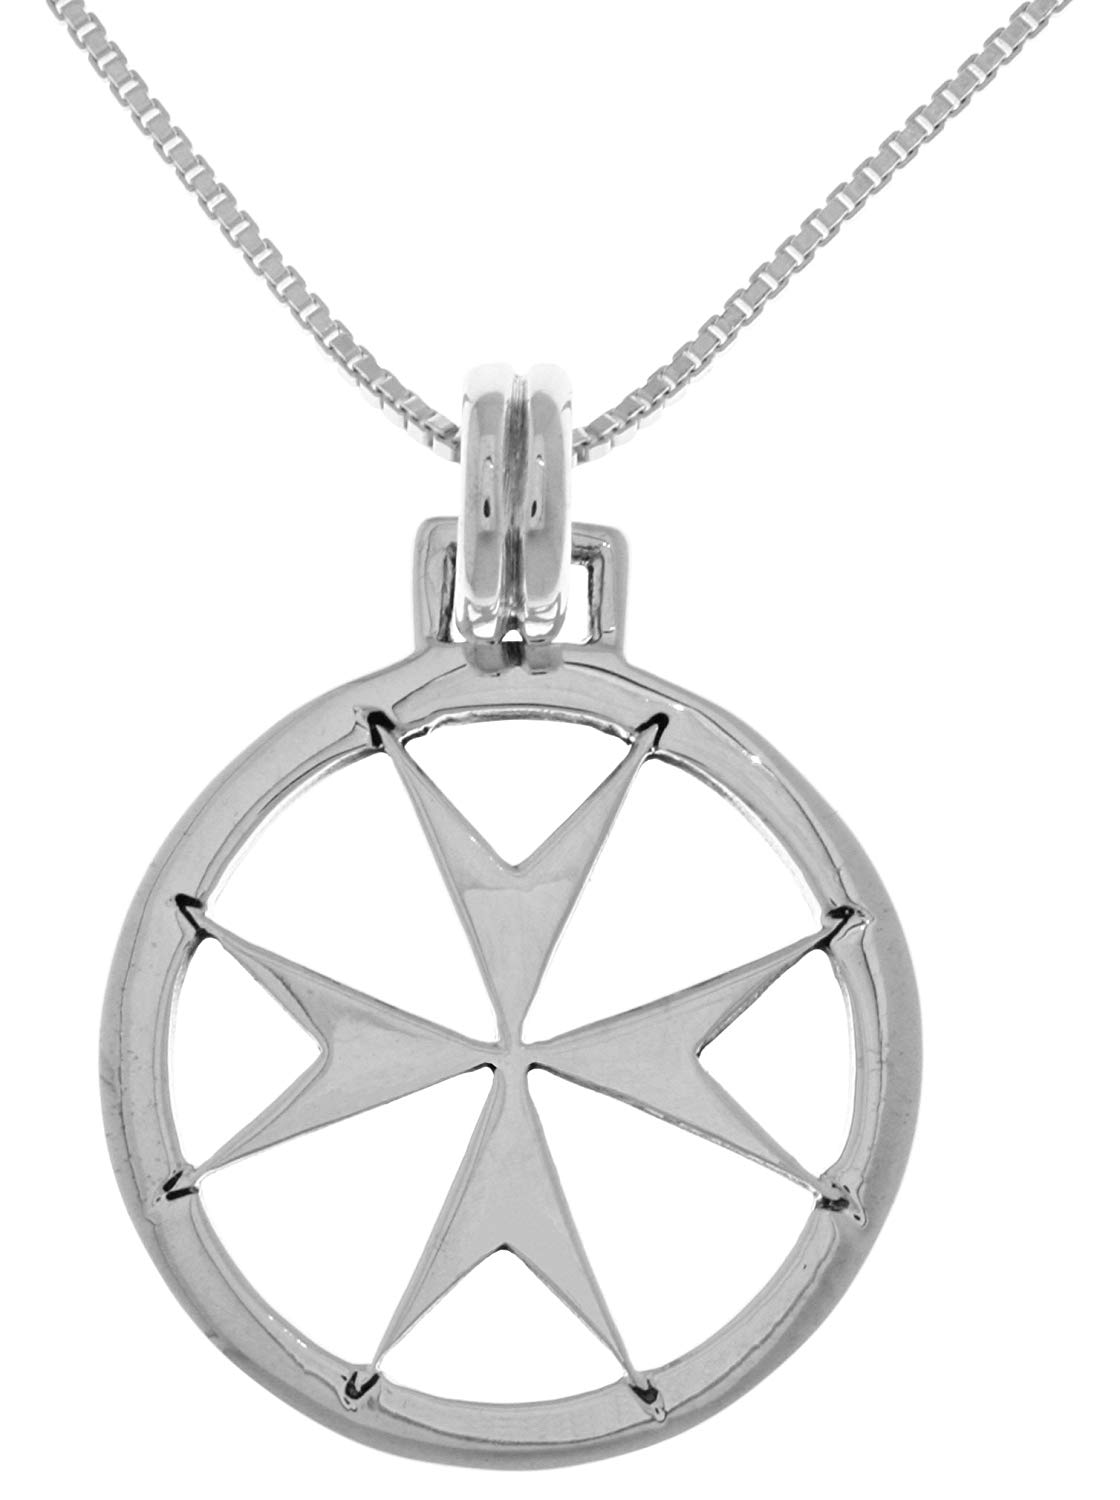 Sterling Silver Oxidized Small Size Fire Department Maltese Cross Emblem Pendant and Polished Box Chain Necklace